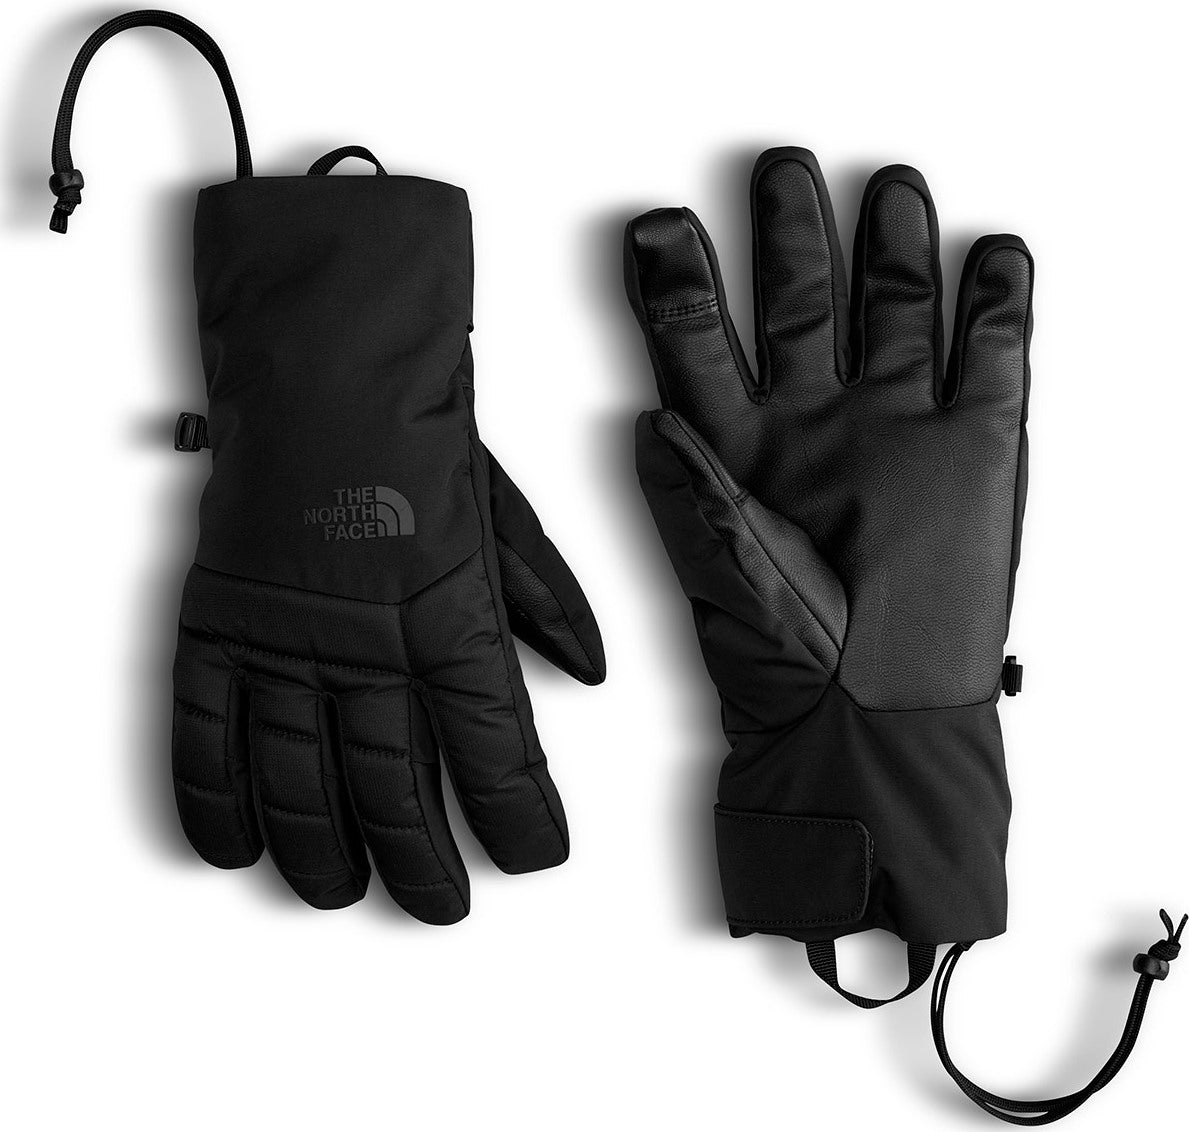 99b050d0392 The North Face Guardian Etip™ Gloves